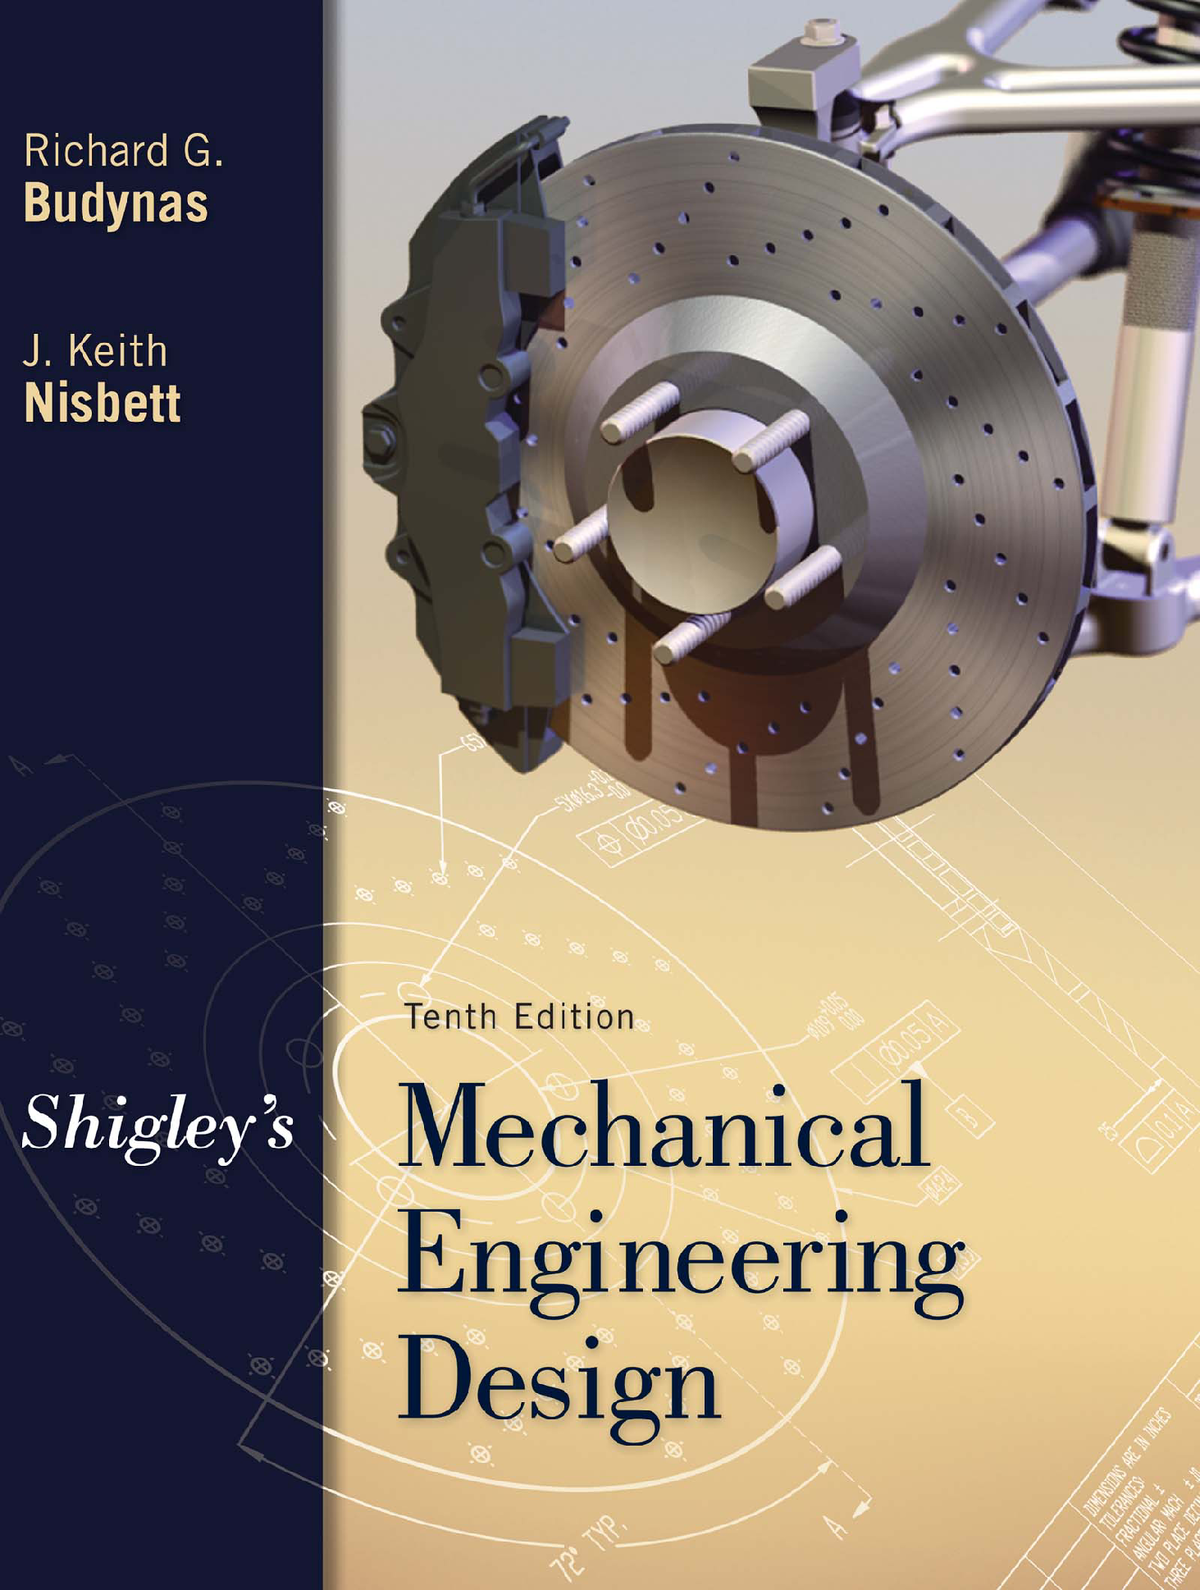 Shigleys Mechanical Engineering Design 10th Edition Studocu